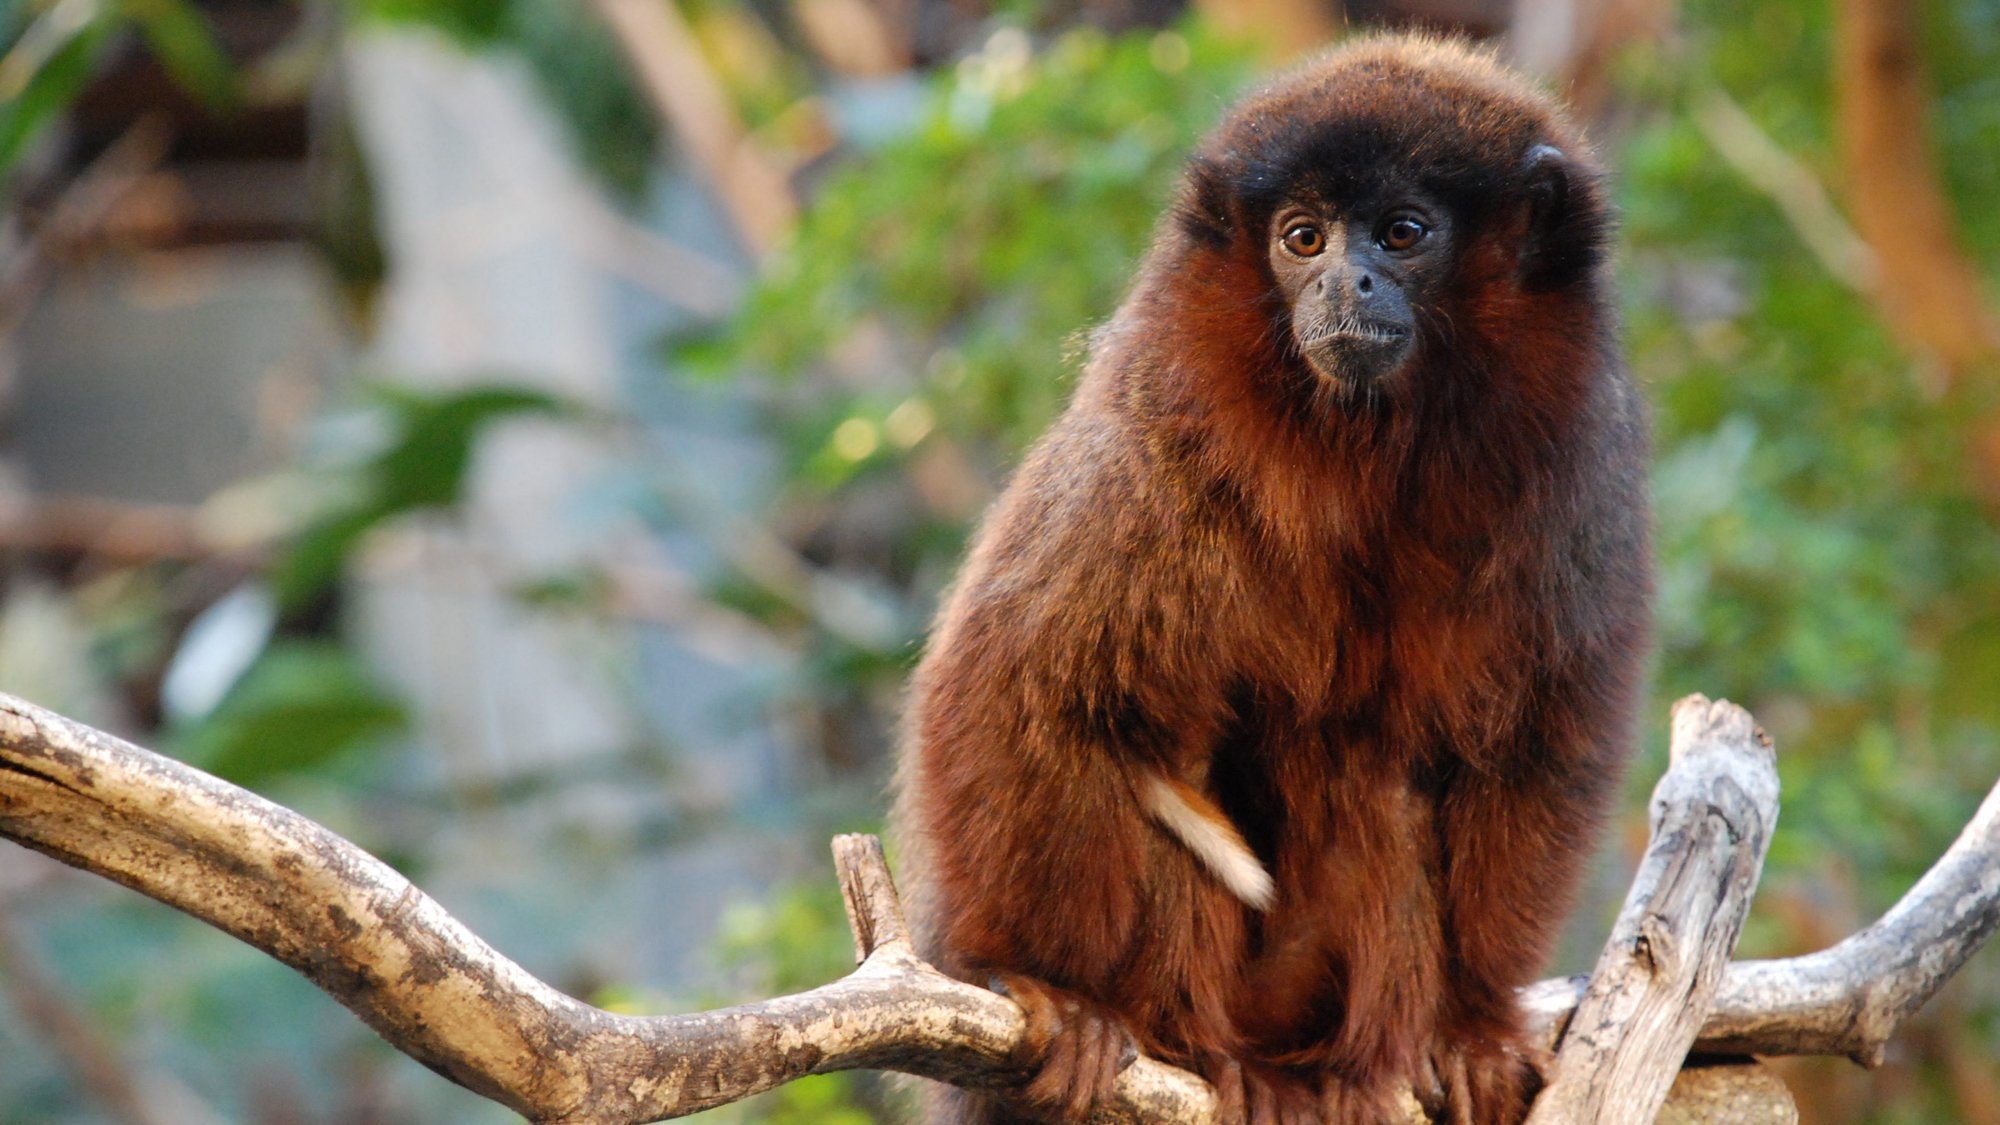 Red Titi Monkey | Zoological Society of London (ZSL)